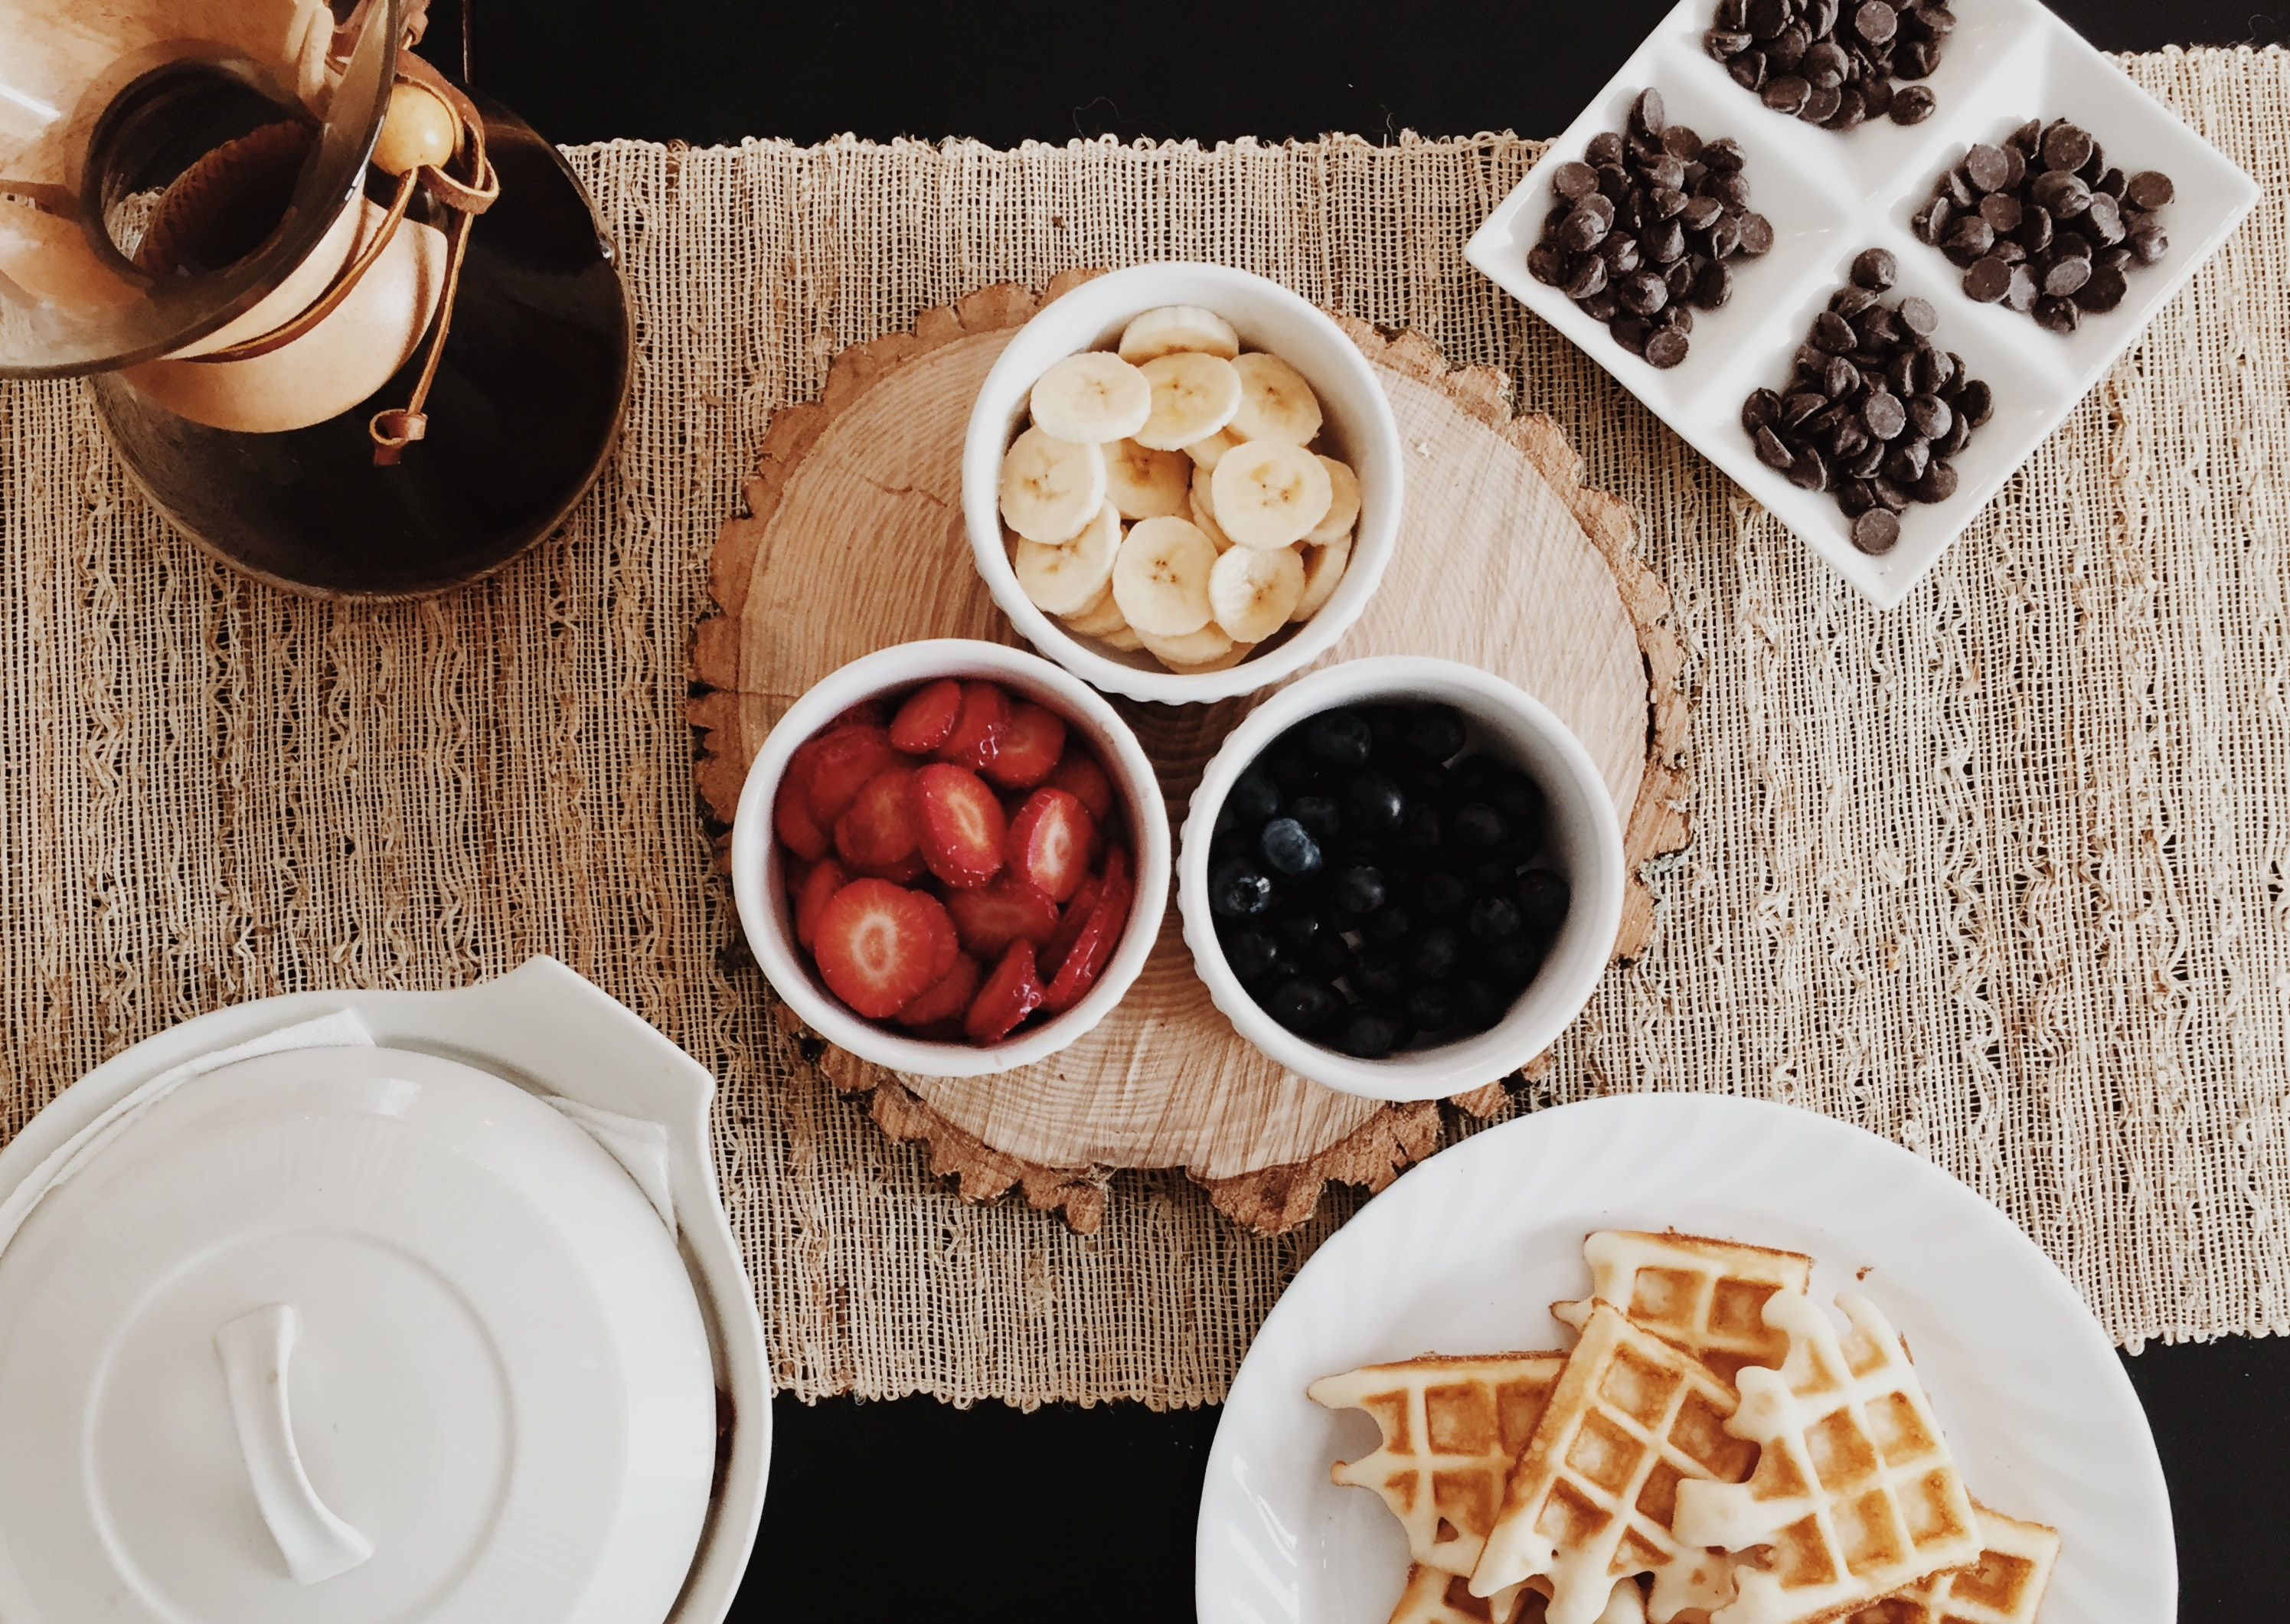 Flat lay of DIY waffle station with fruit, syrup, and chocolate chips